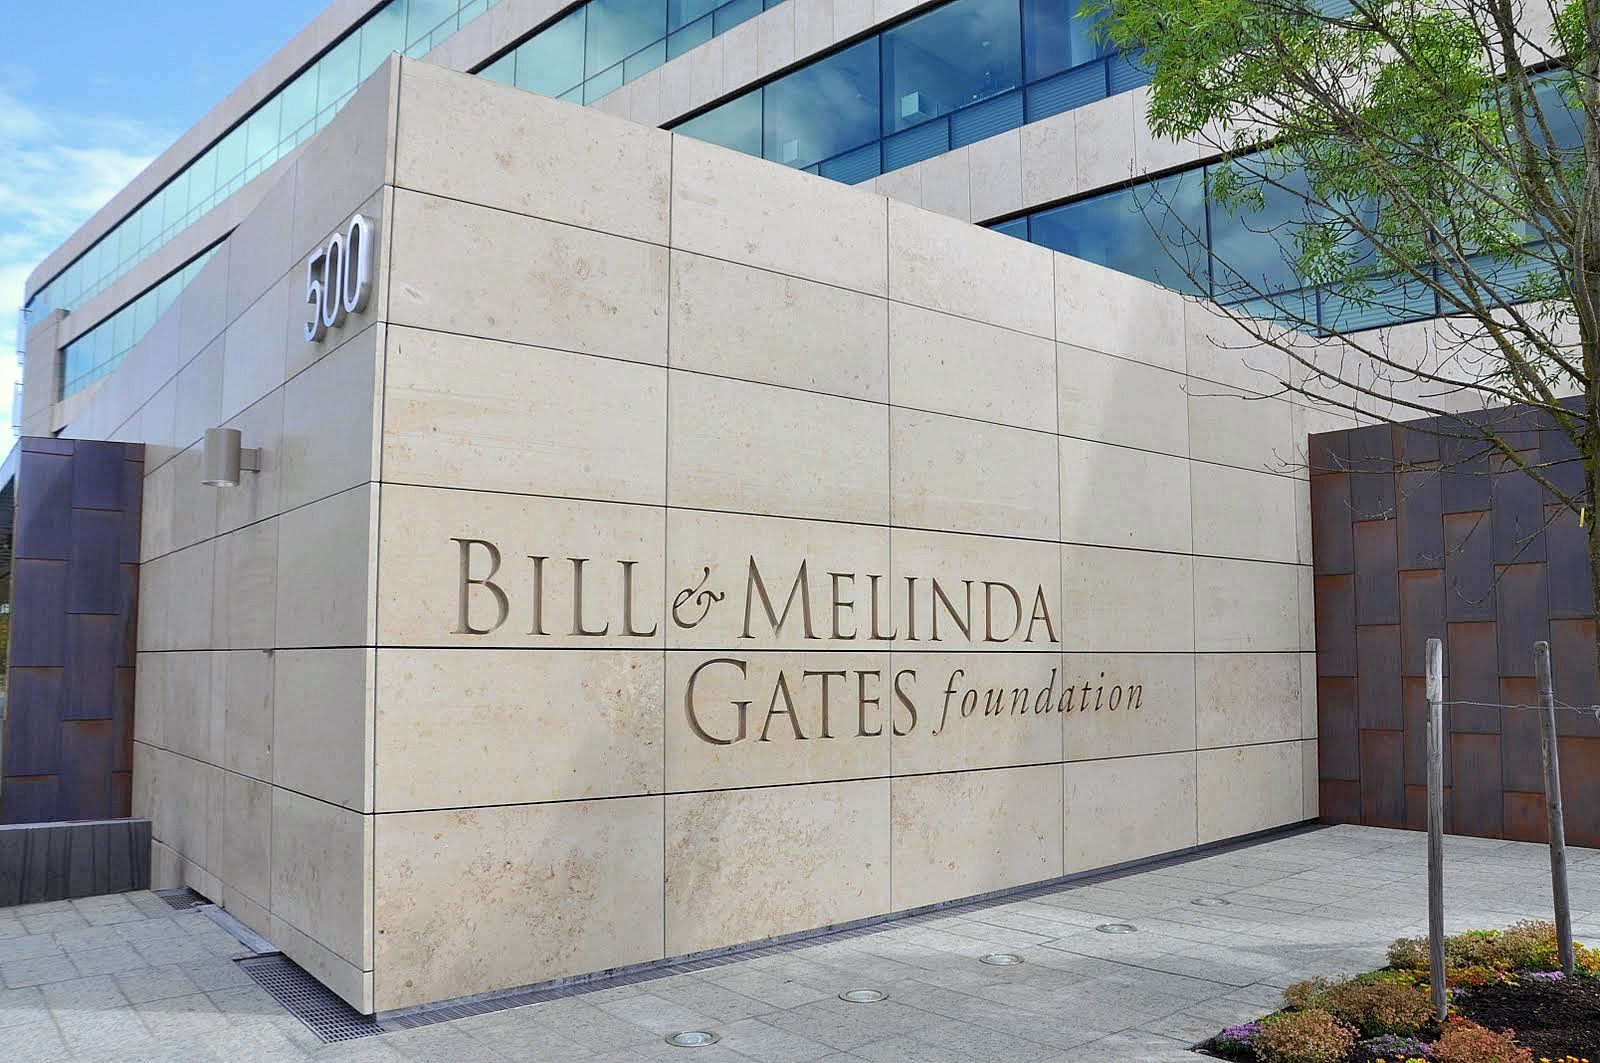 Bill Amp Melinda Gates Foundation Seeks To Fund Solutions